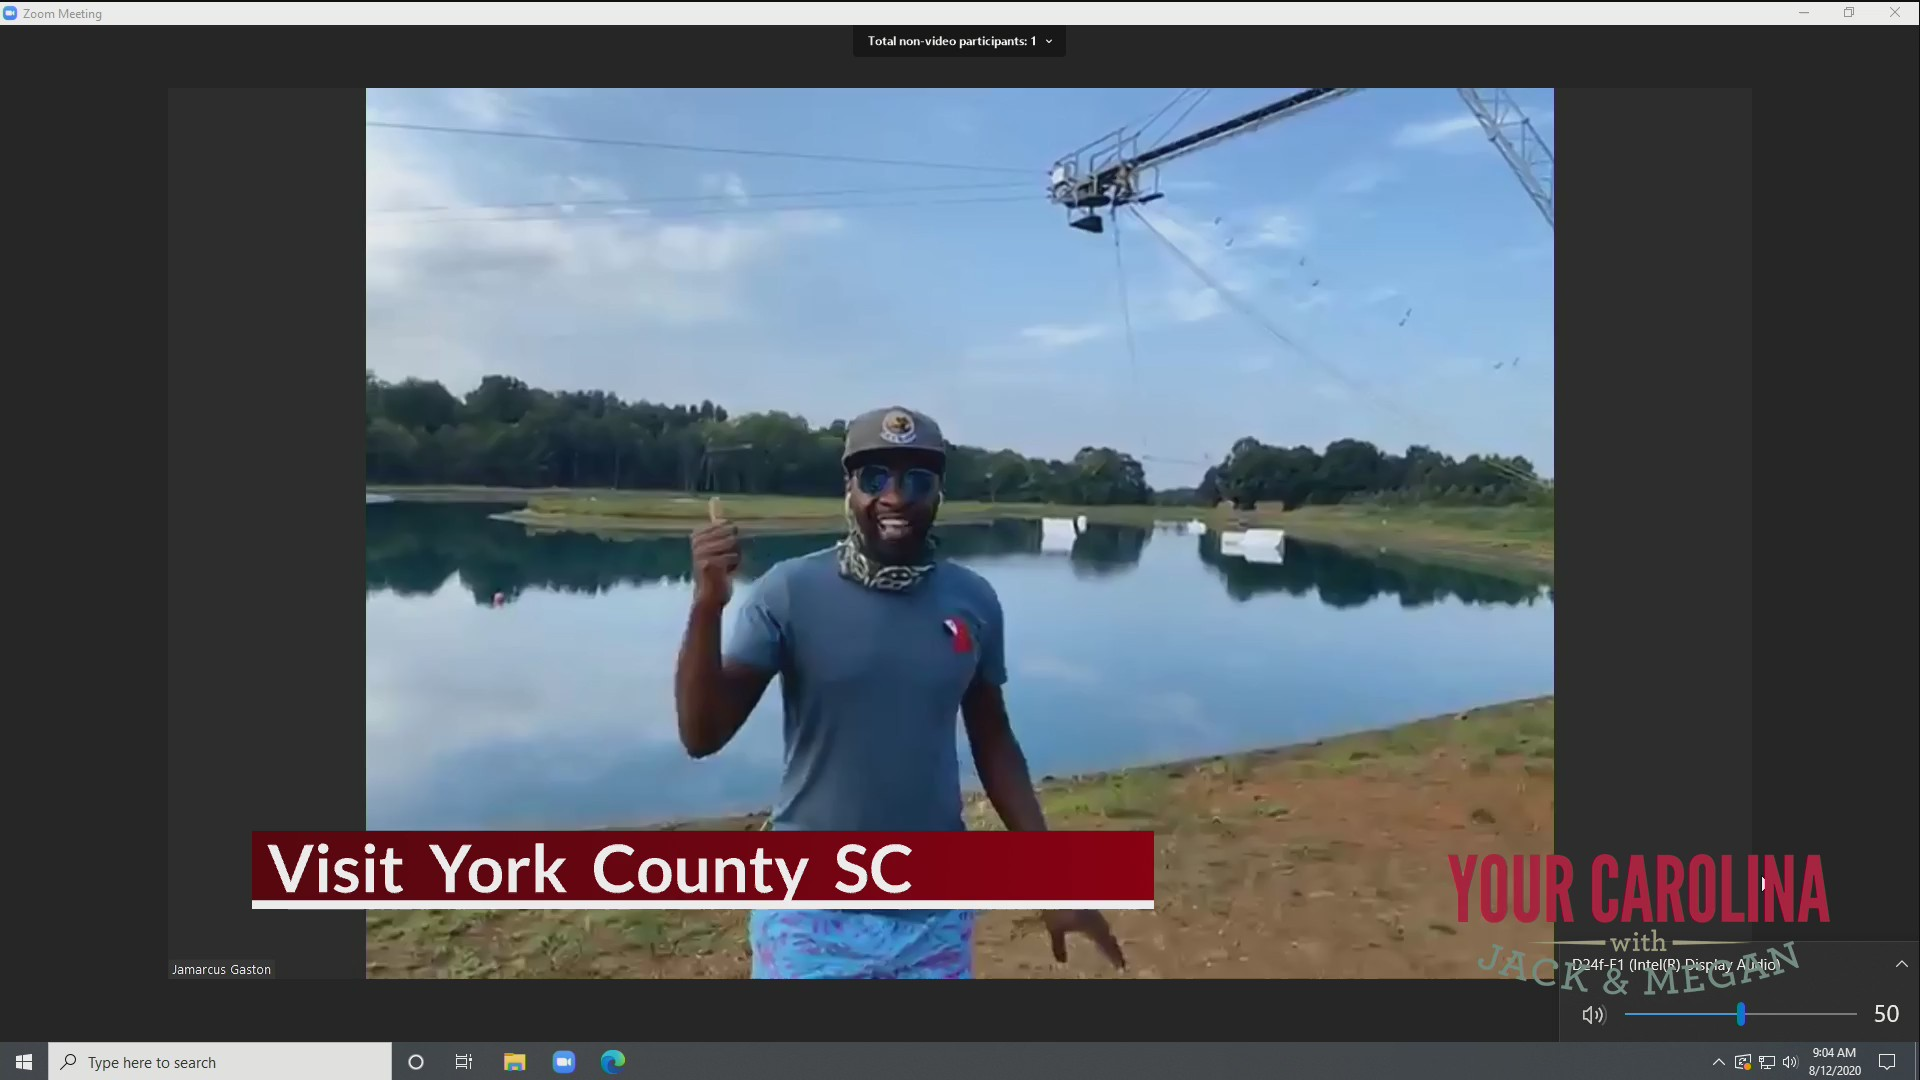 Jamarcus Tells Us What He Has Been Up To In York County SC